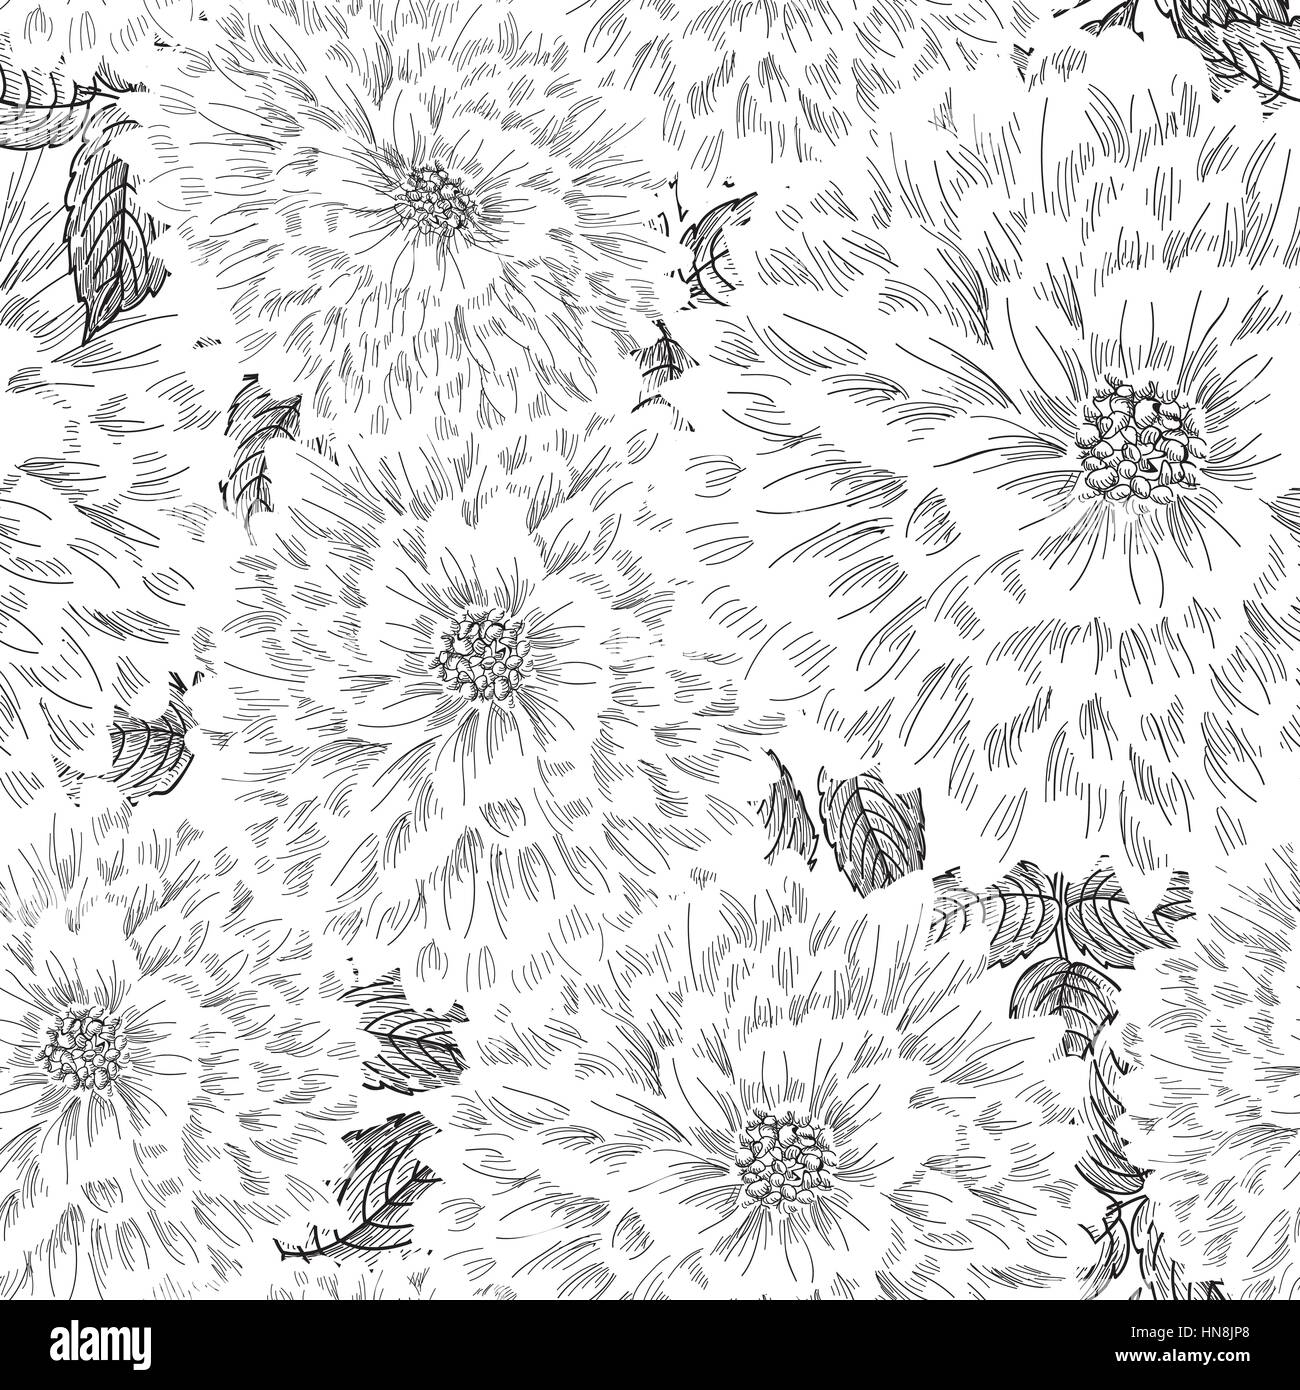 Pink floral seamless vector background floral hrysanthemum seamless - Floral Seamless Pattern Flower Chrysanthemum Sketch Chinese Style Background Flourish Seamless Texture With Flowers